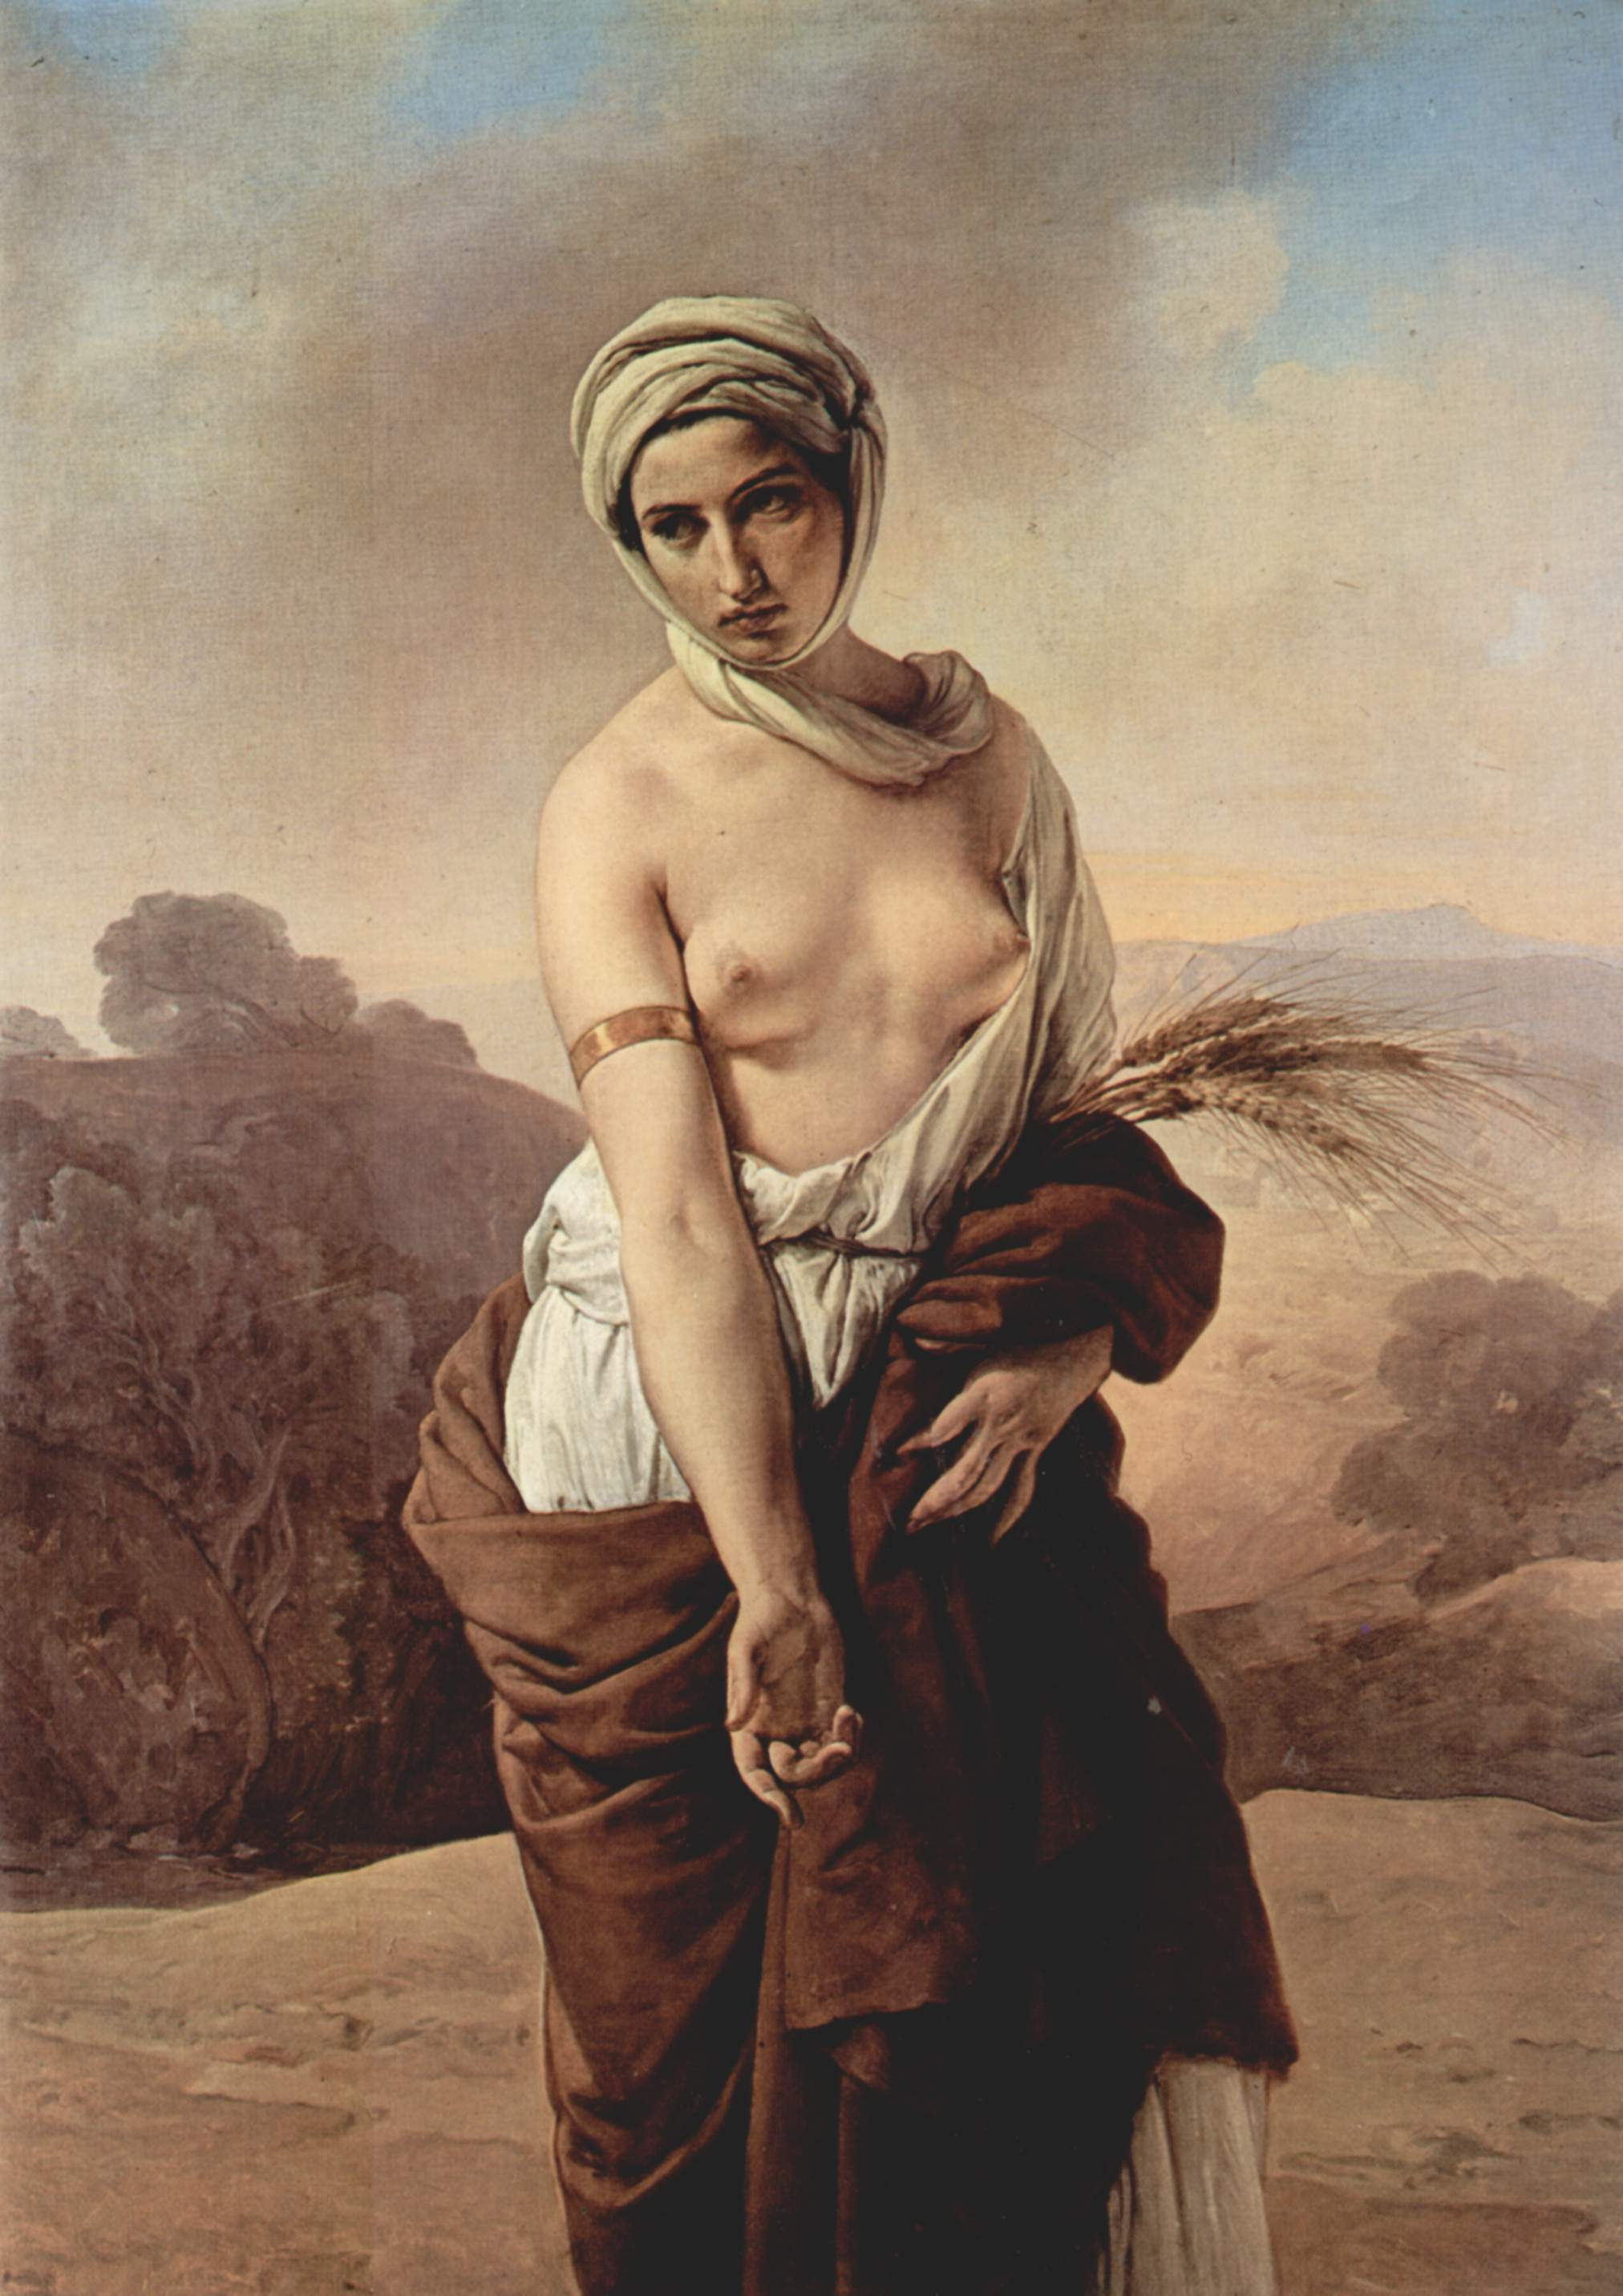 http://uploads4.wikipaintings.org/images/francesco-hayez/ruth-1835.jpg